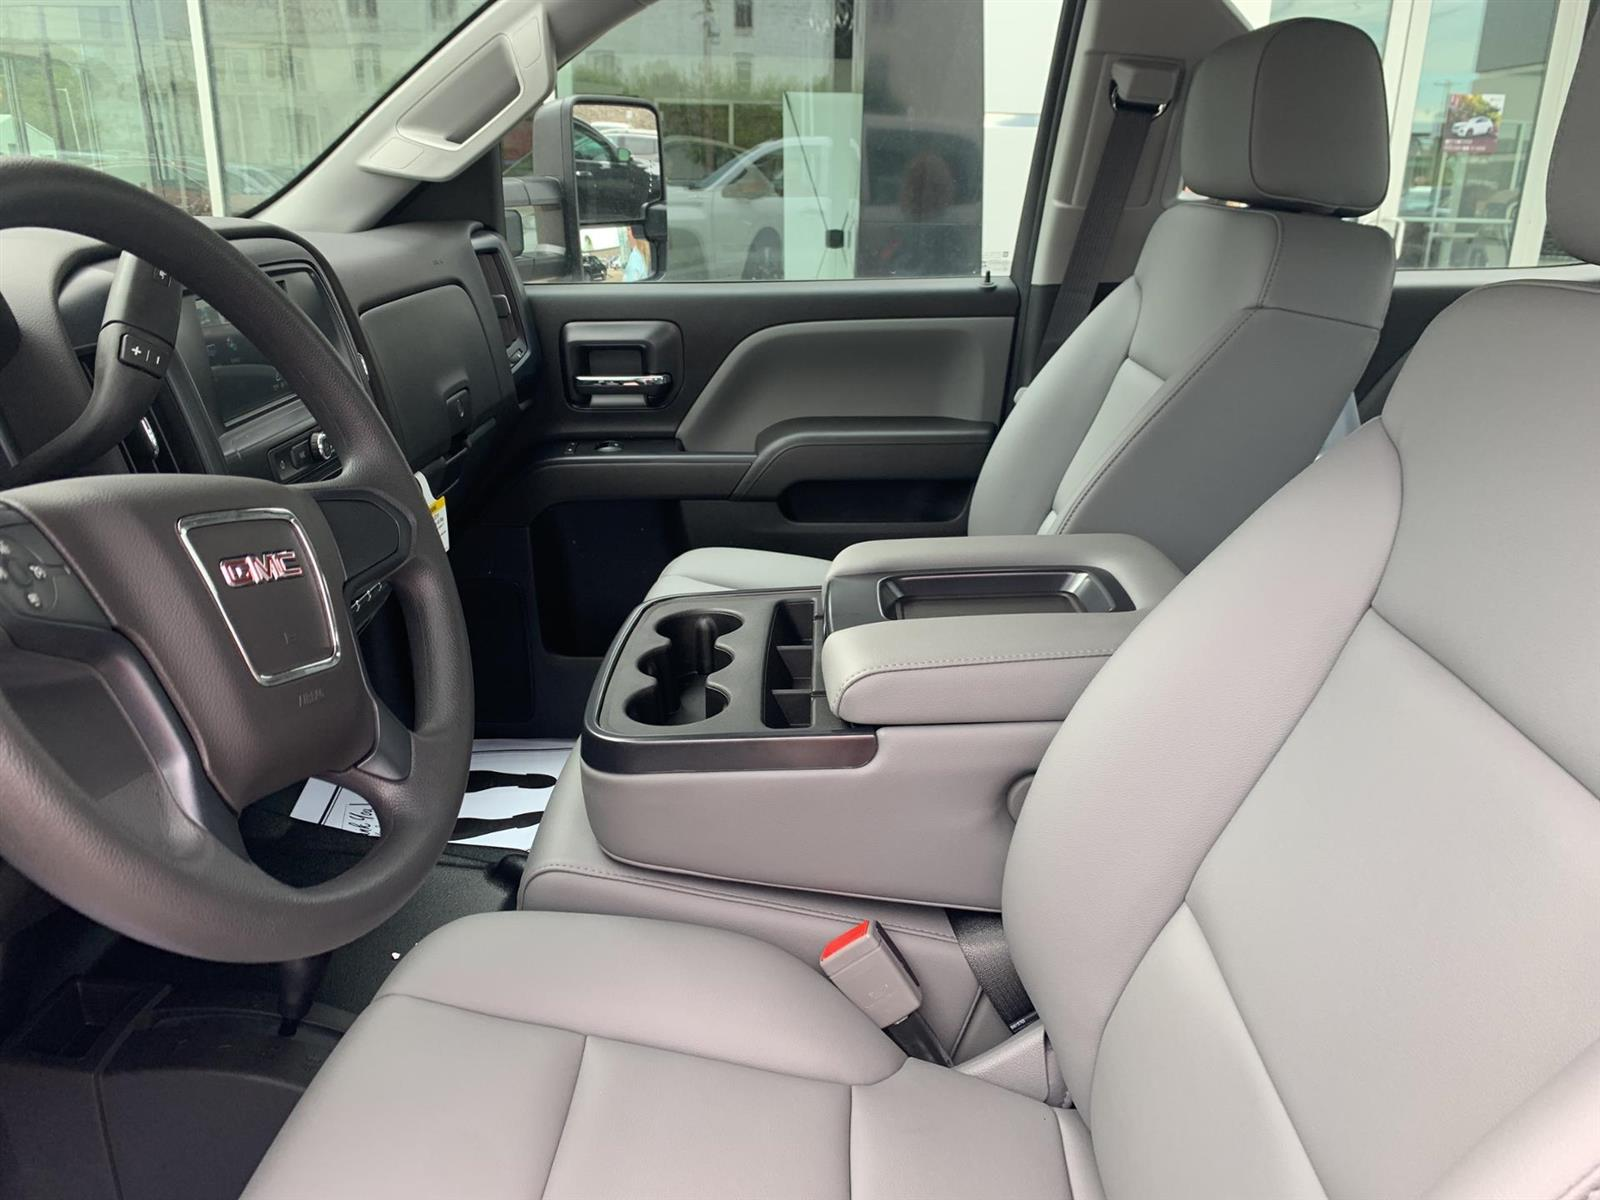 2019 GMC Sierra 3500 Crew Cab DRW 4x4, Reading Redi-Dek Platform Body #254765 - photo 7